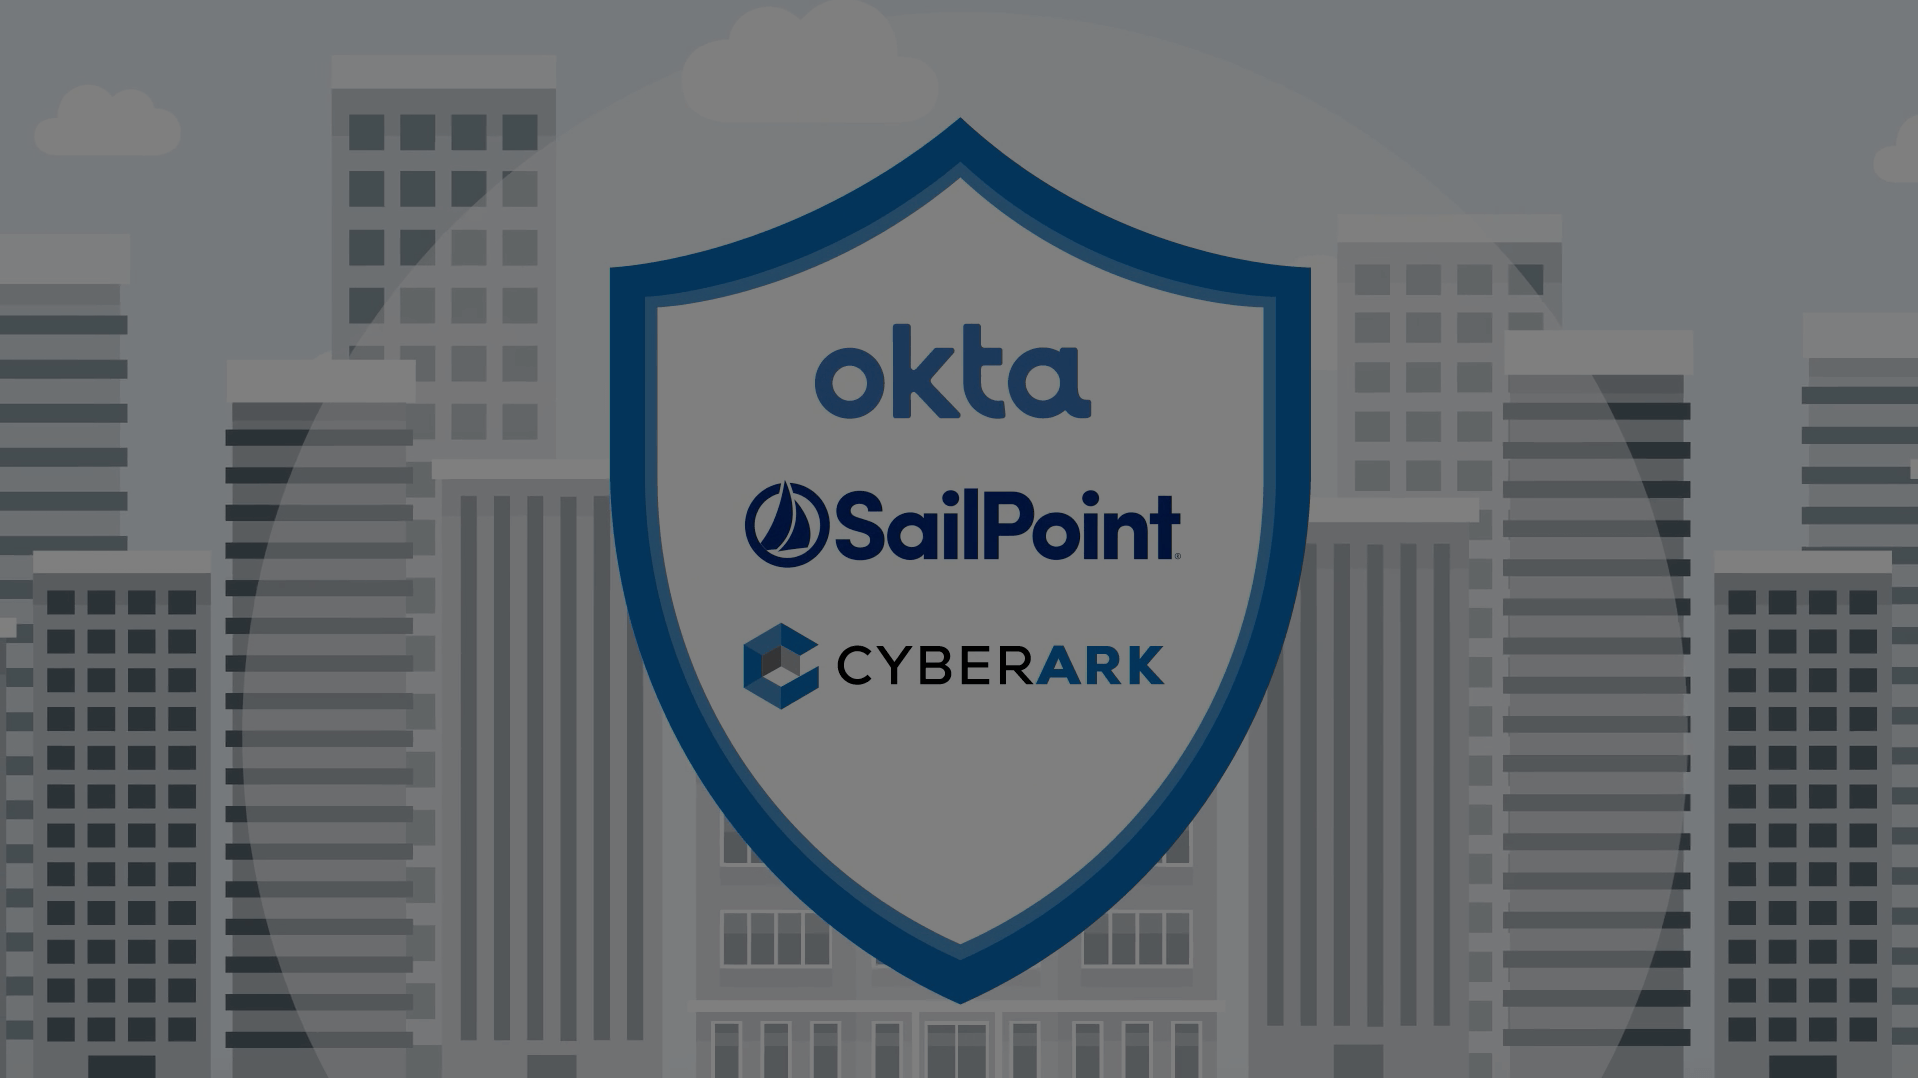 Okta + SailPoint + CyberArk: The Powers of Identity and